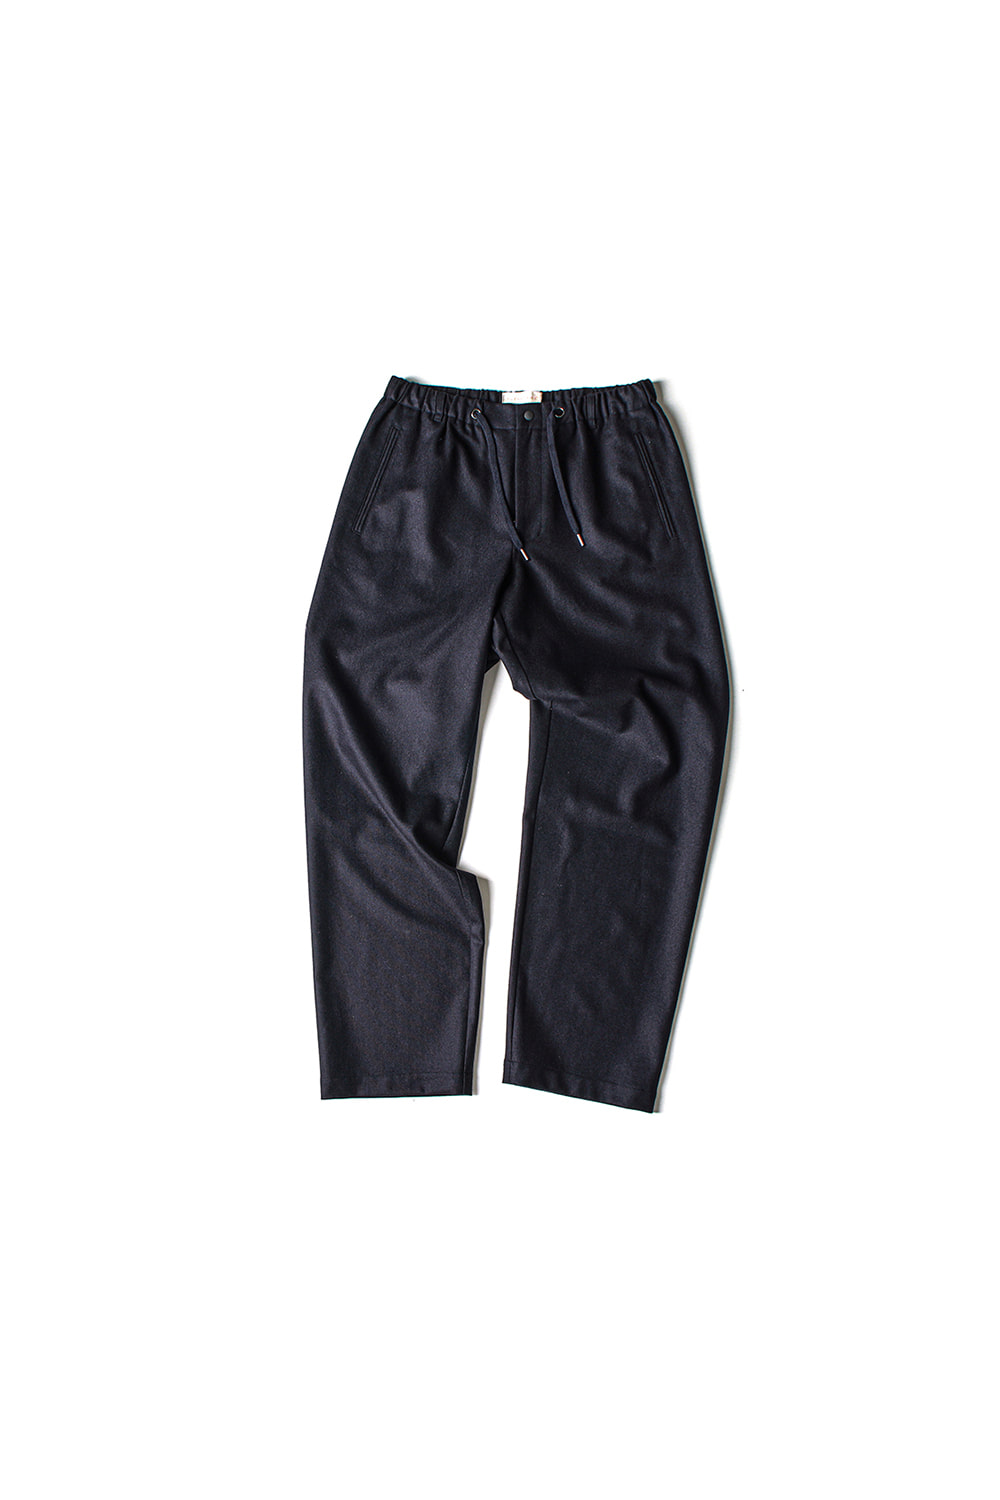 [Ourselves] FINE WOOL SLUMBER PANTS (NV)